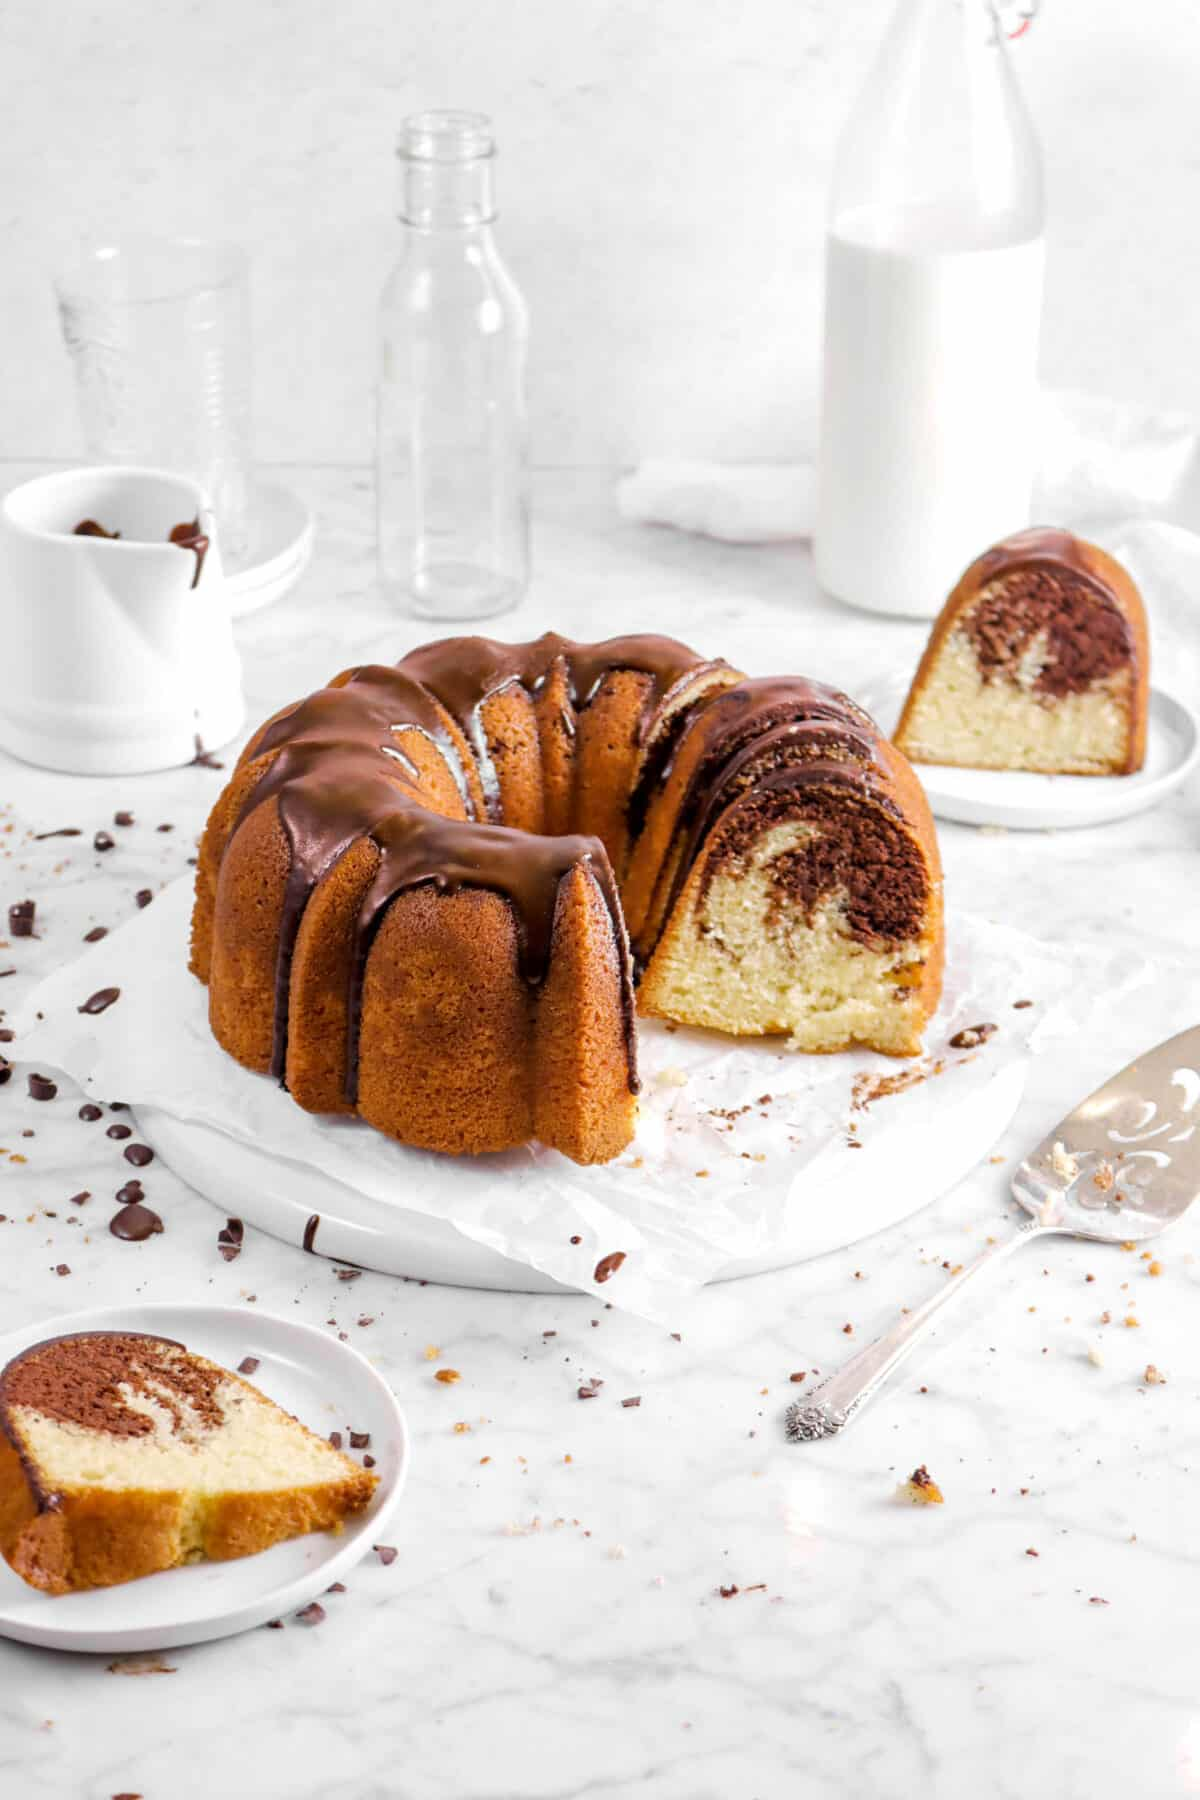 chocolate marble pound cake on upside down plate on parchment with a slice in front on a white plate and a slice behind on a white plate with a cake knife, glass of milk, a napkin, two empty glasses, and creamer glass